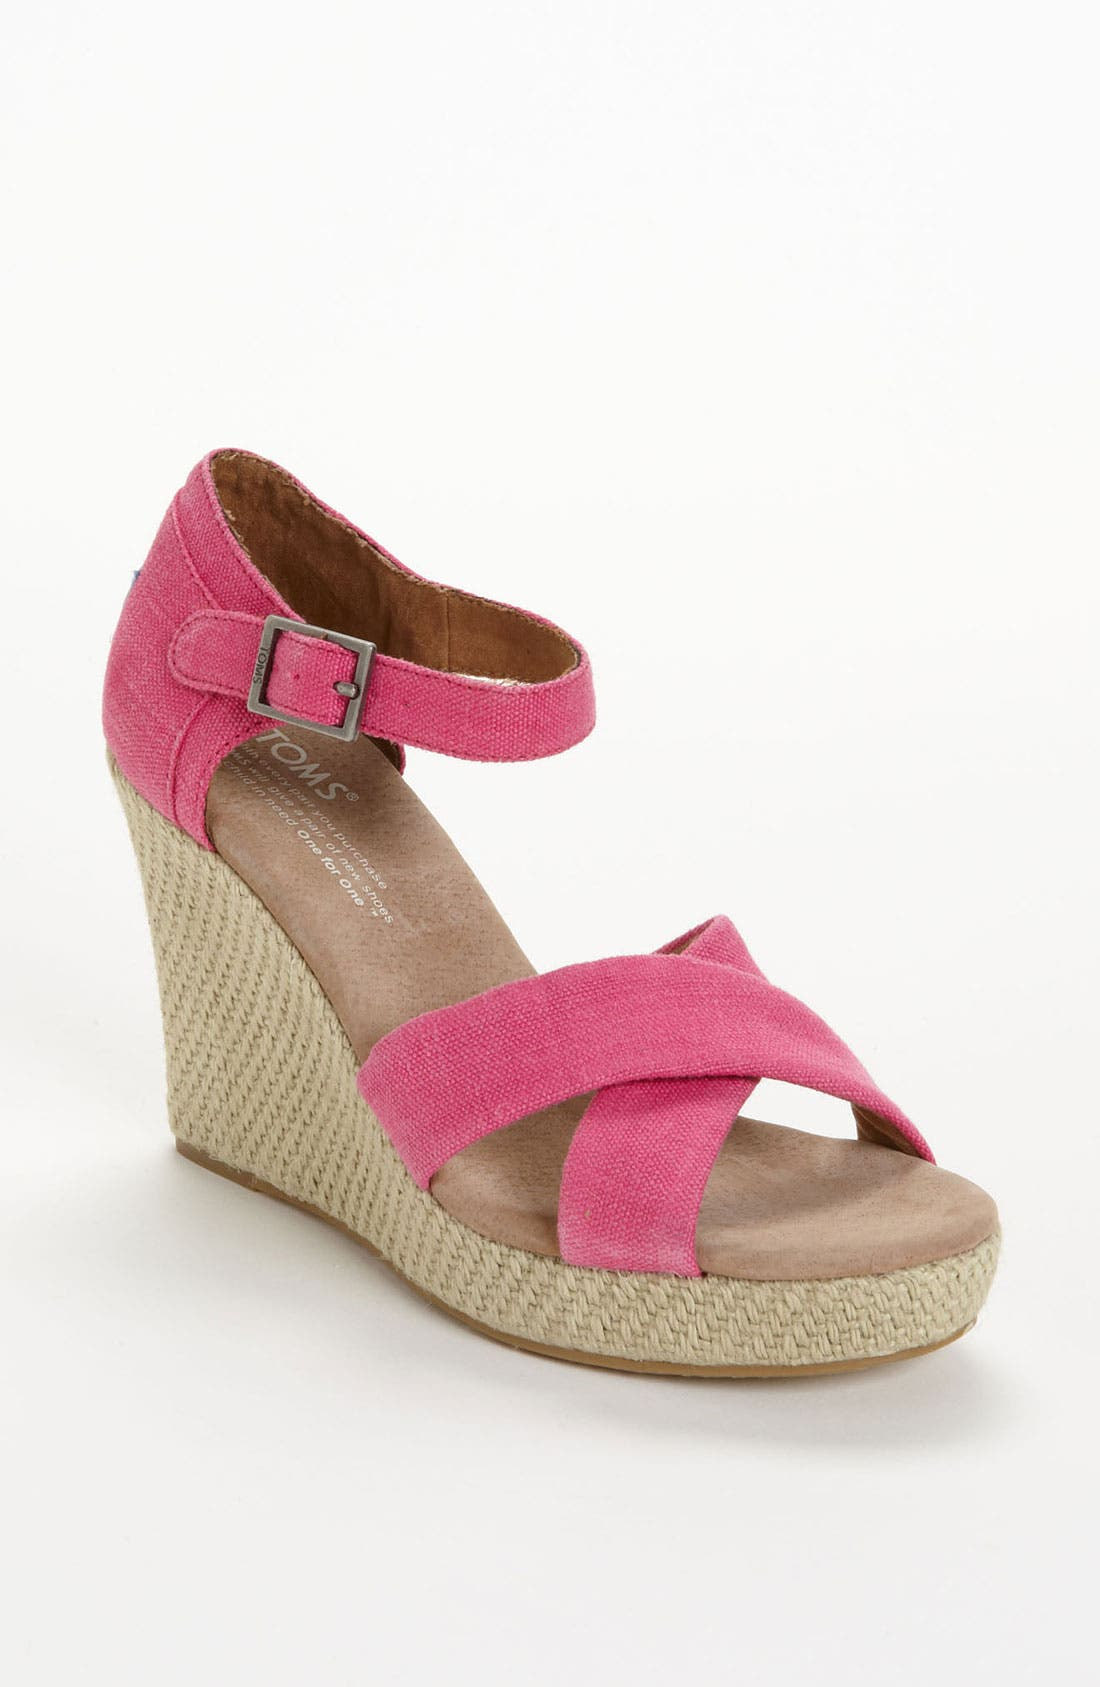 Alternate Image 1 Selected - TOMS Hemp Wedge Sandal